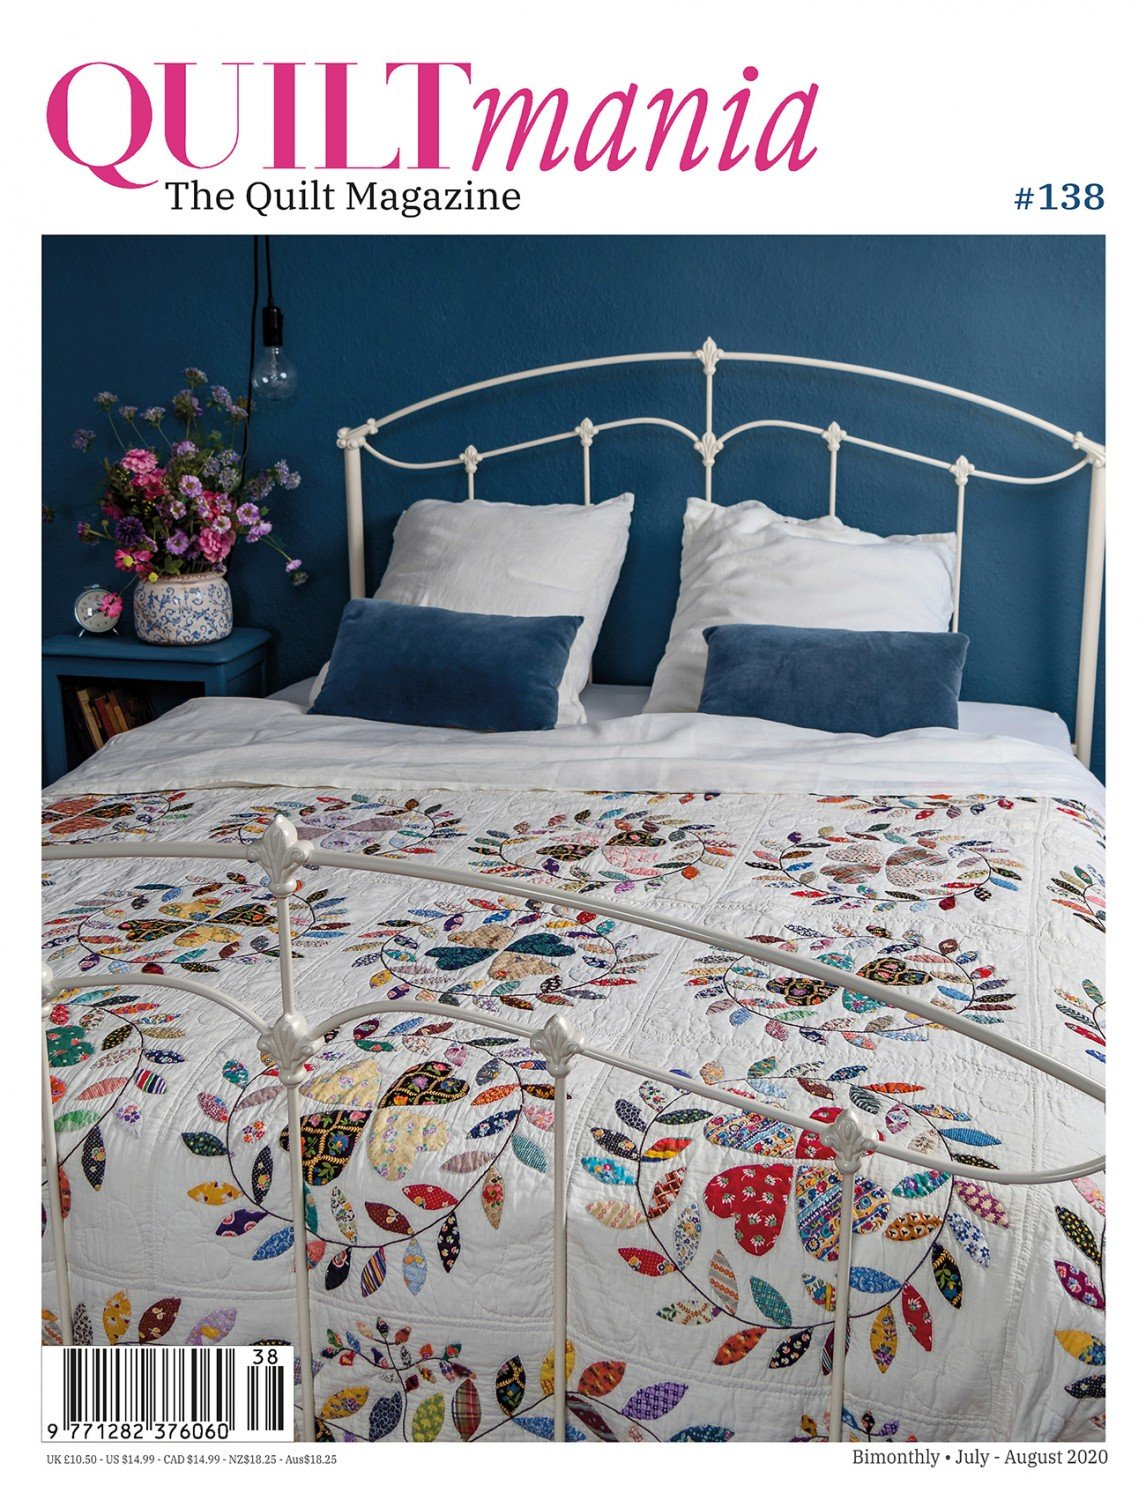 Quiltmania No. 138 The Quilt Magazine (July - August 2020)